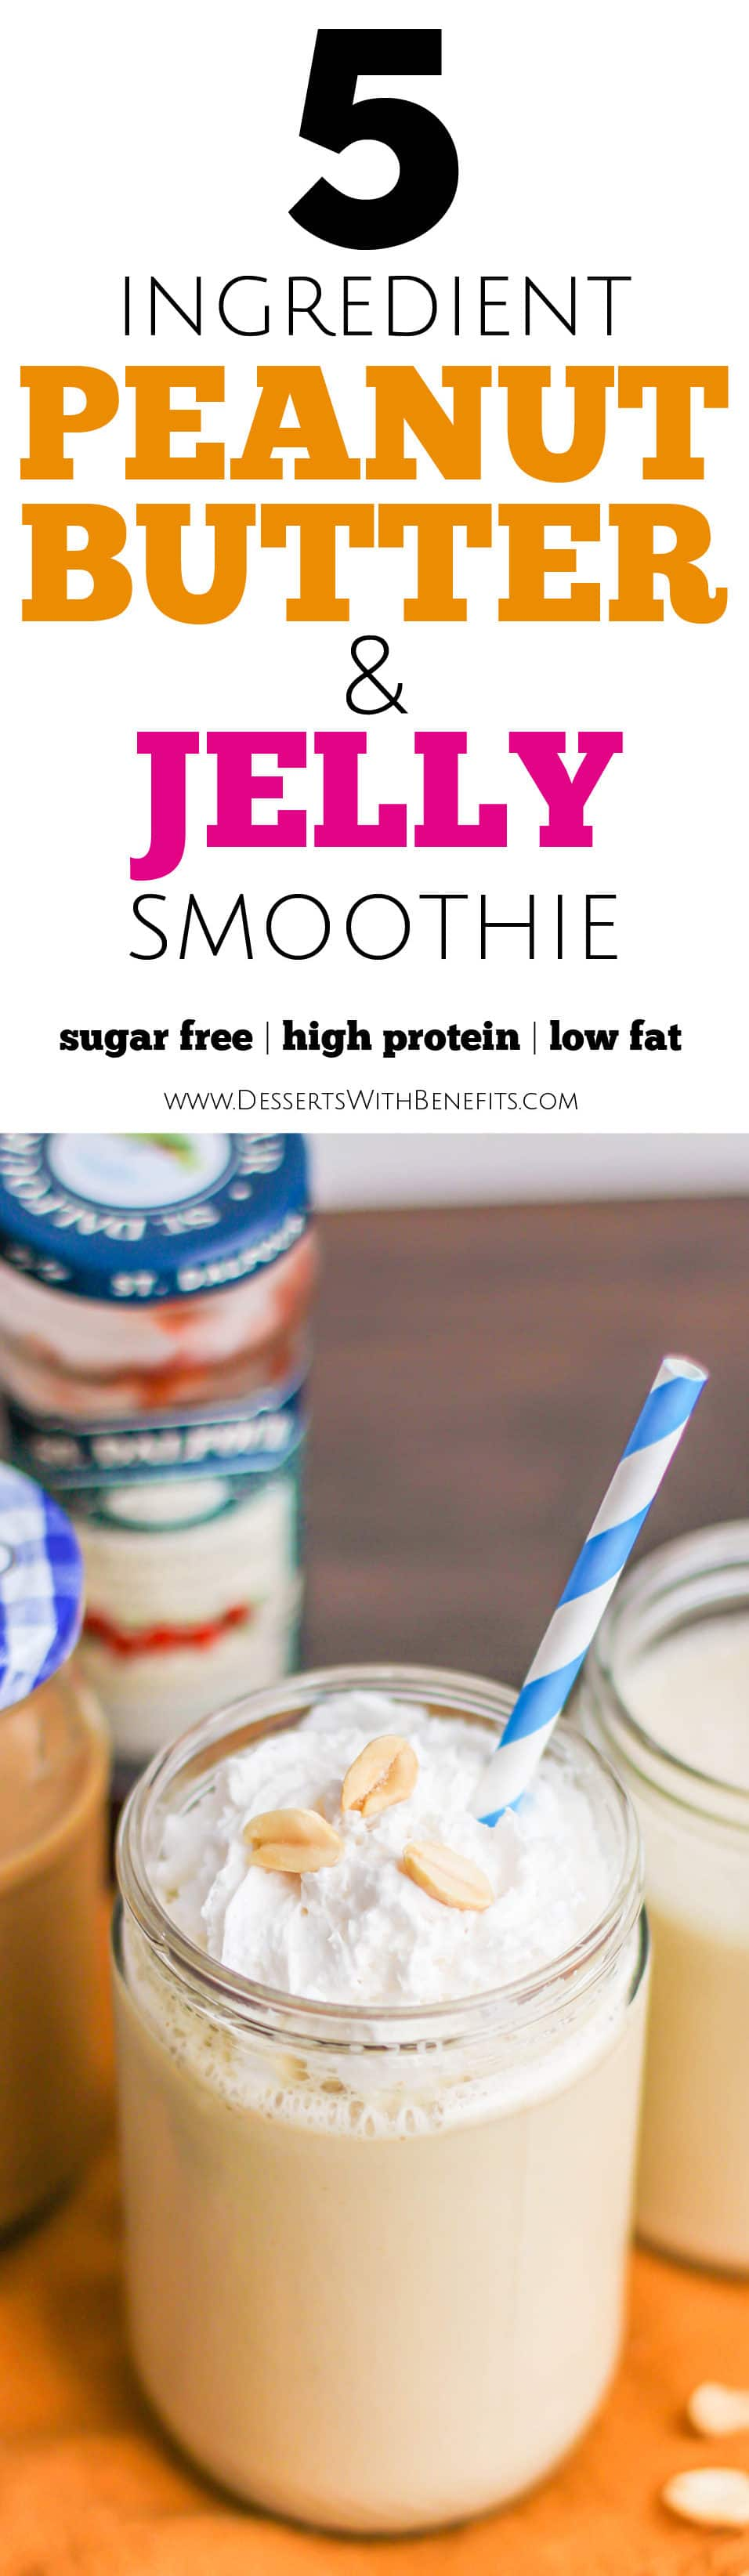 This sweet, rich and creamy Healthy Peanut Butter and Jelly Smoothie sure doesn't taste refined sugar free, low fat, high protein, high fiber, and gluten free in the slightest! -- Healthy Dessert Recipes at Desserts with Benefits